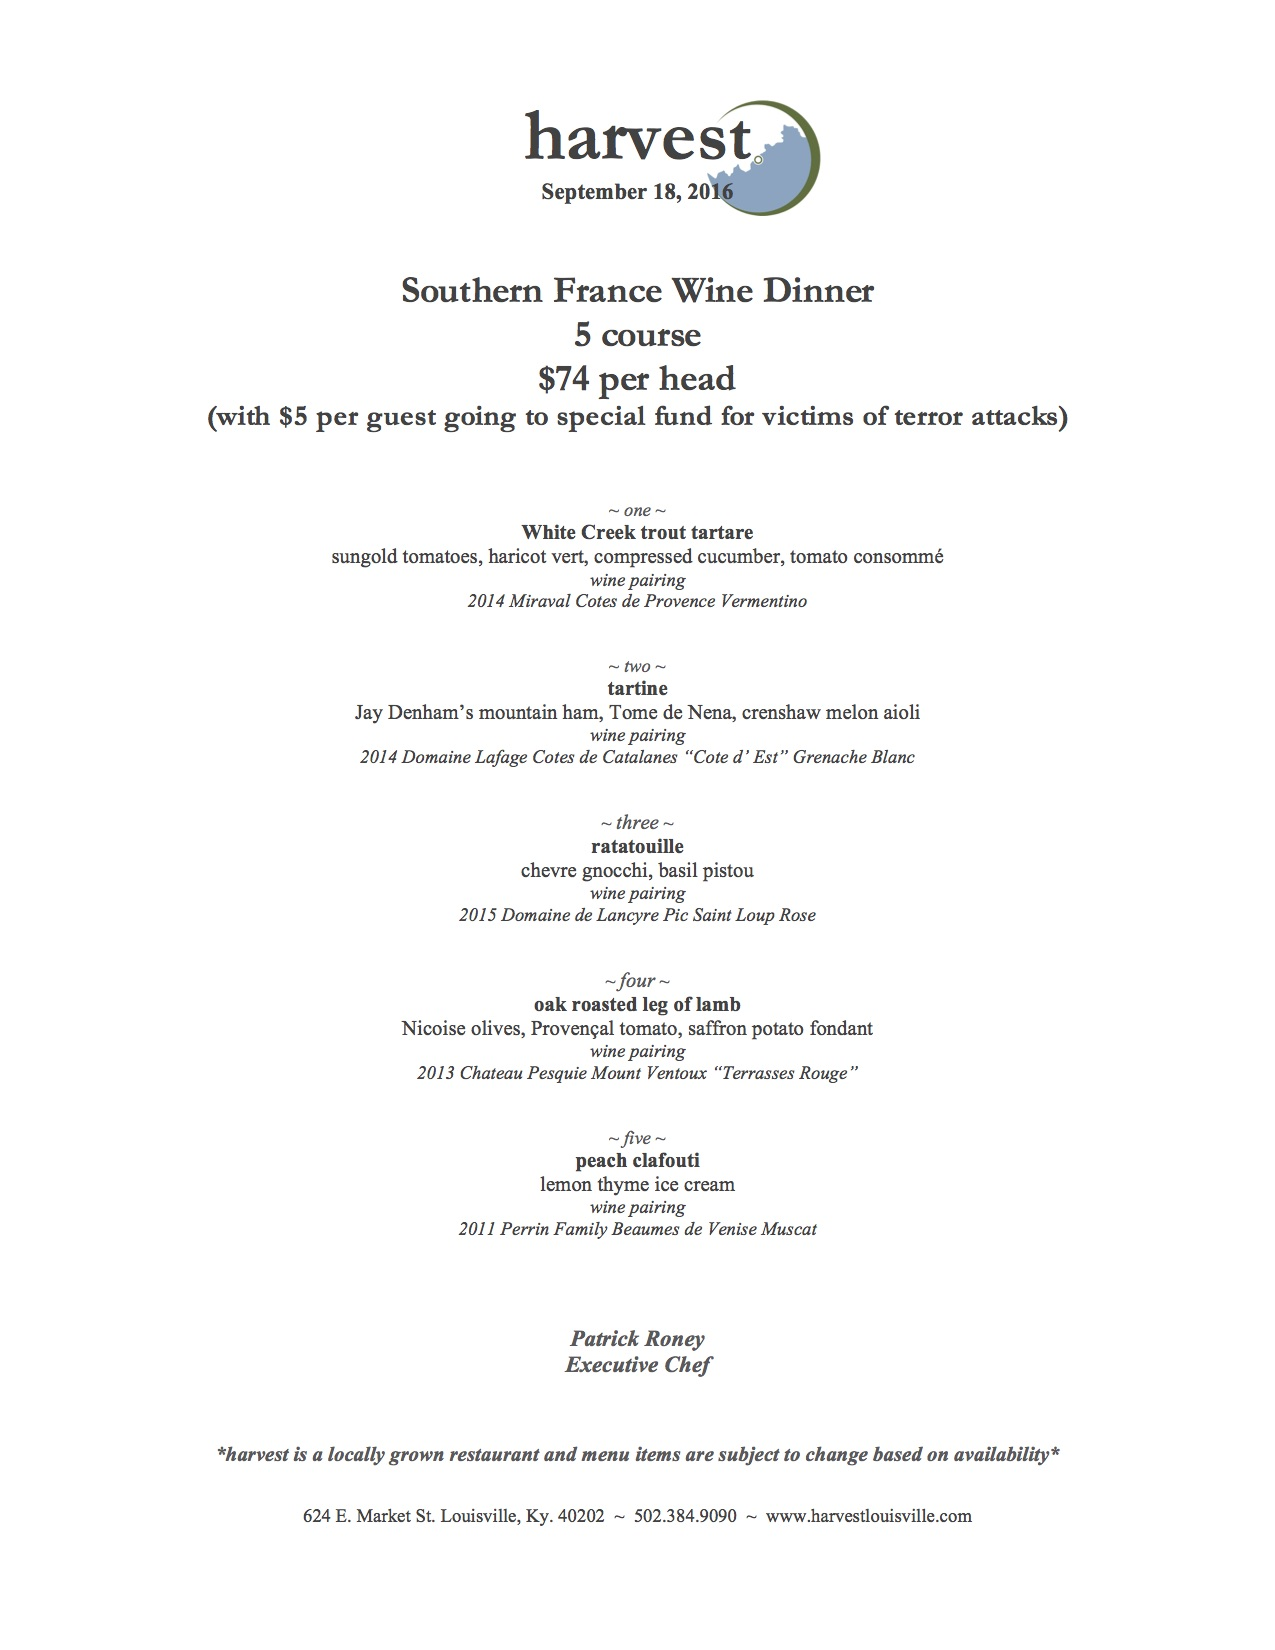 harvest restaurant special southern france wine dinner